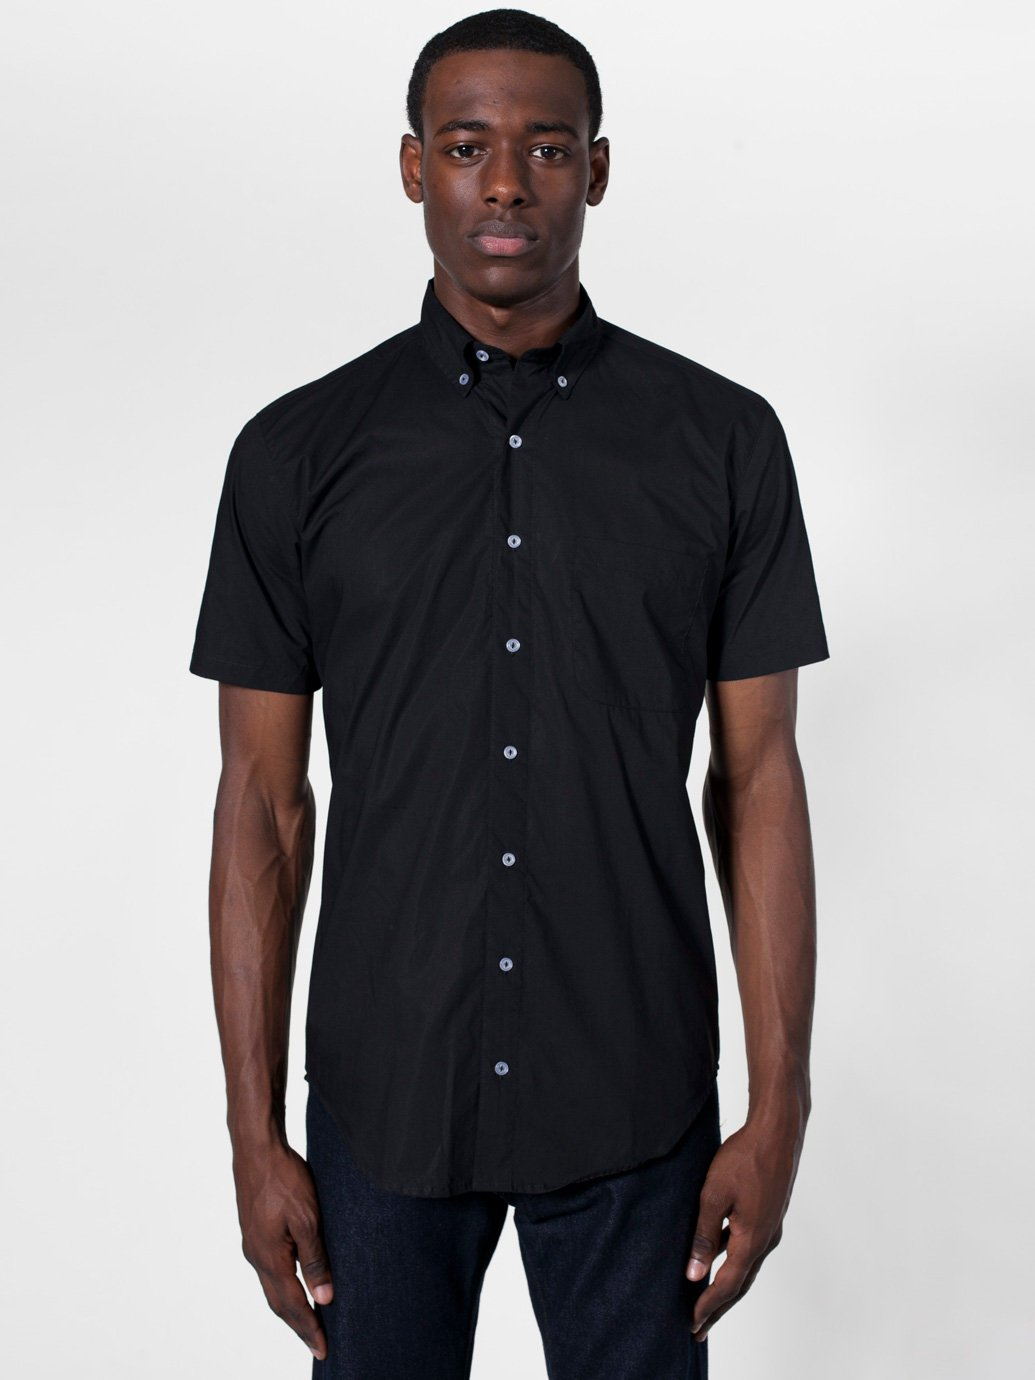 Shop the Latest Collection of Short Sleeve Casual Shirts for Men Online at celebtubesnews.ml FREE SHIPPING AVAILABLE!